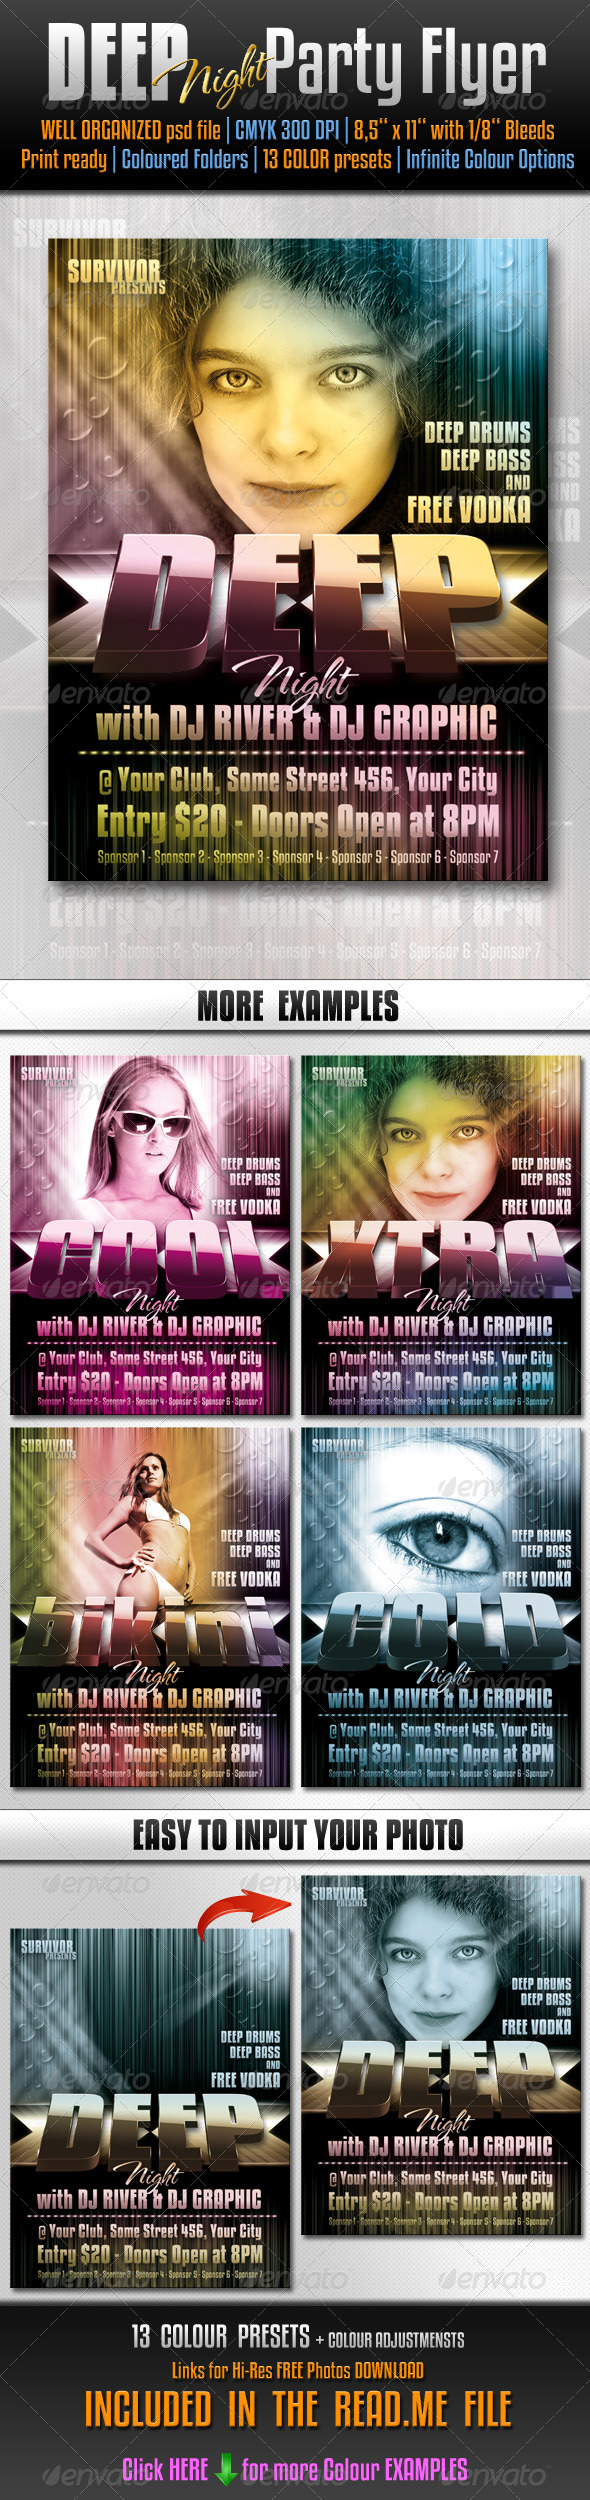 Deep Party Flyer / Poster Template - Clubs & Parties Events